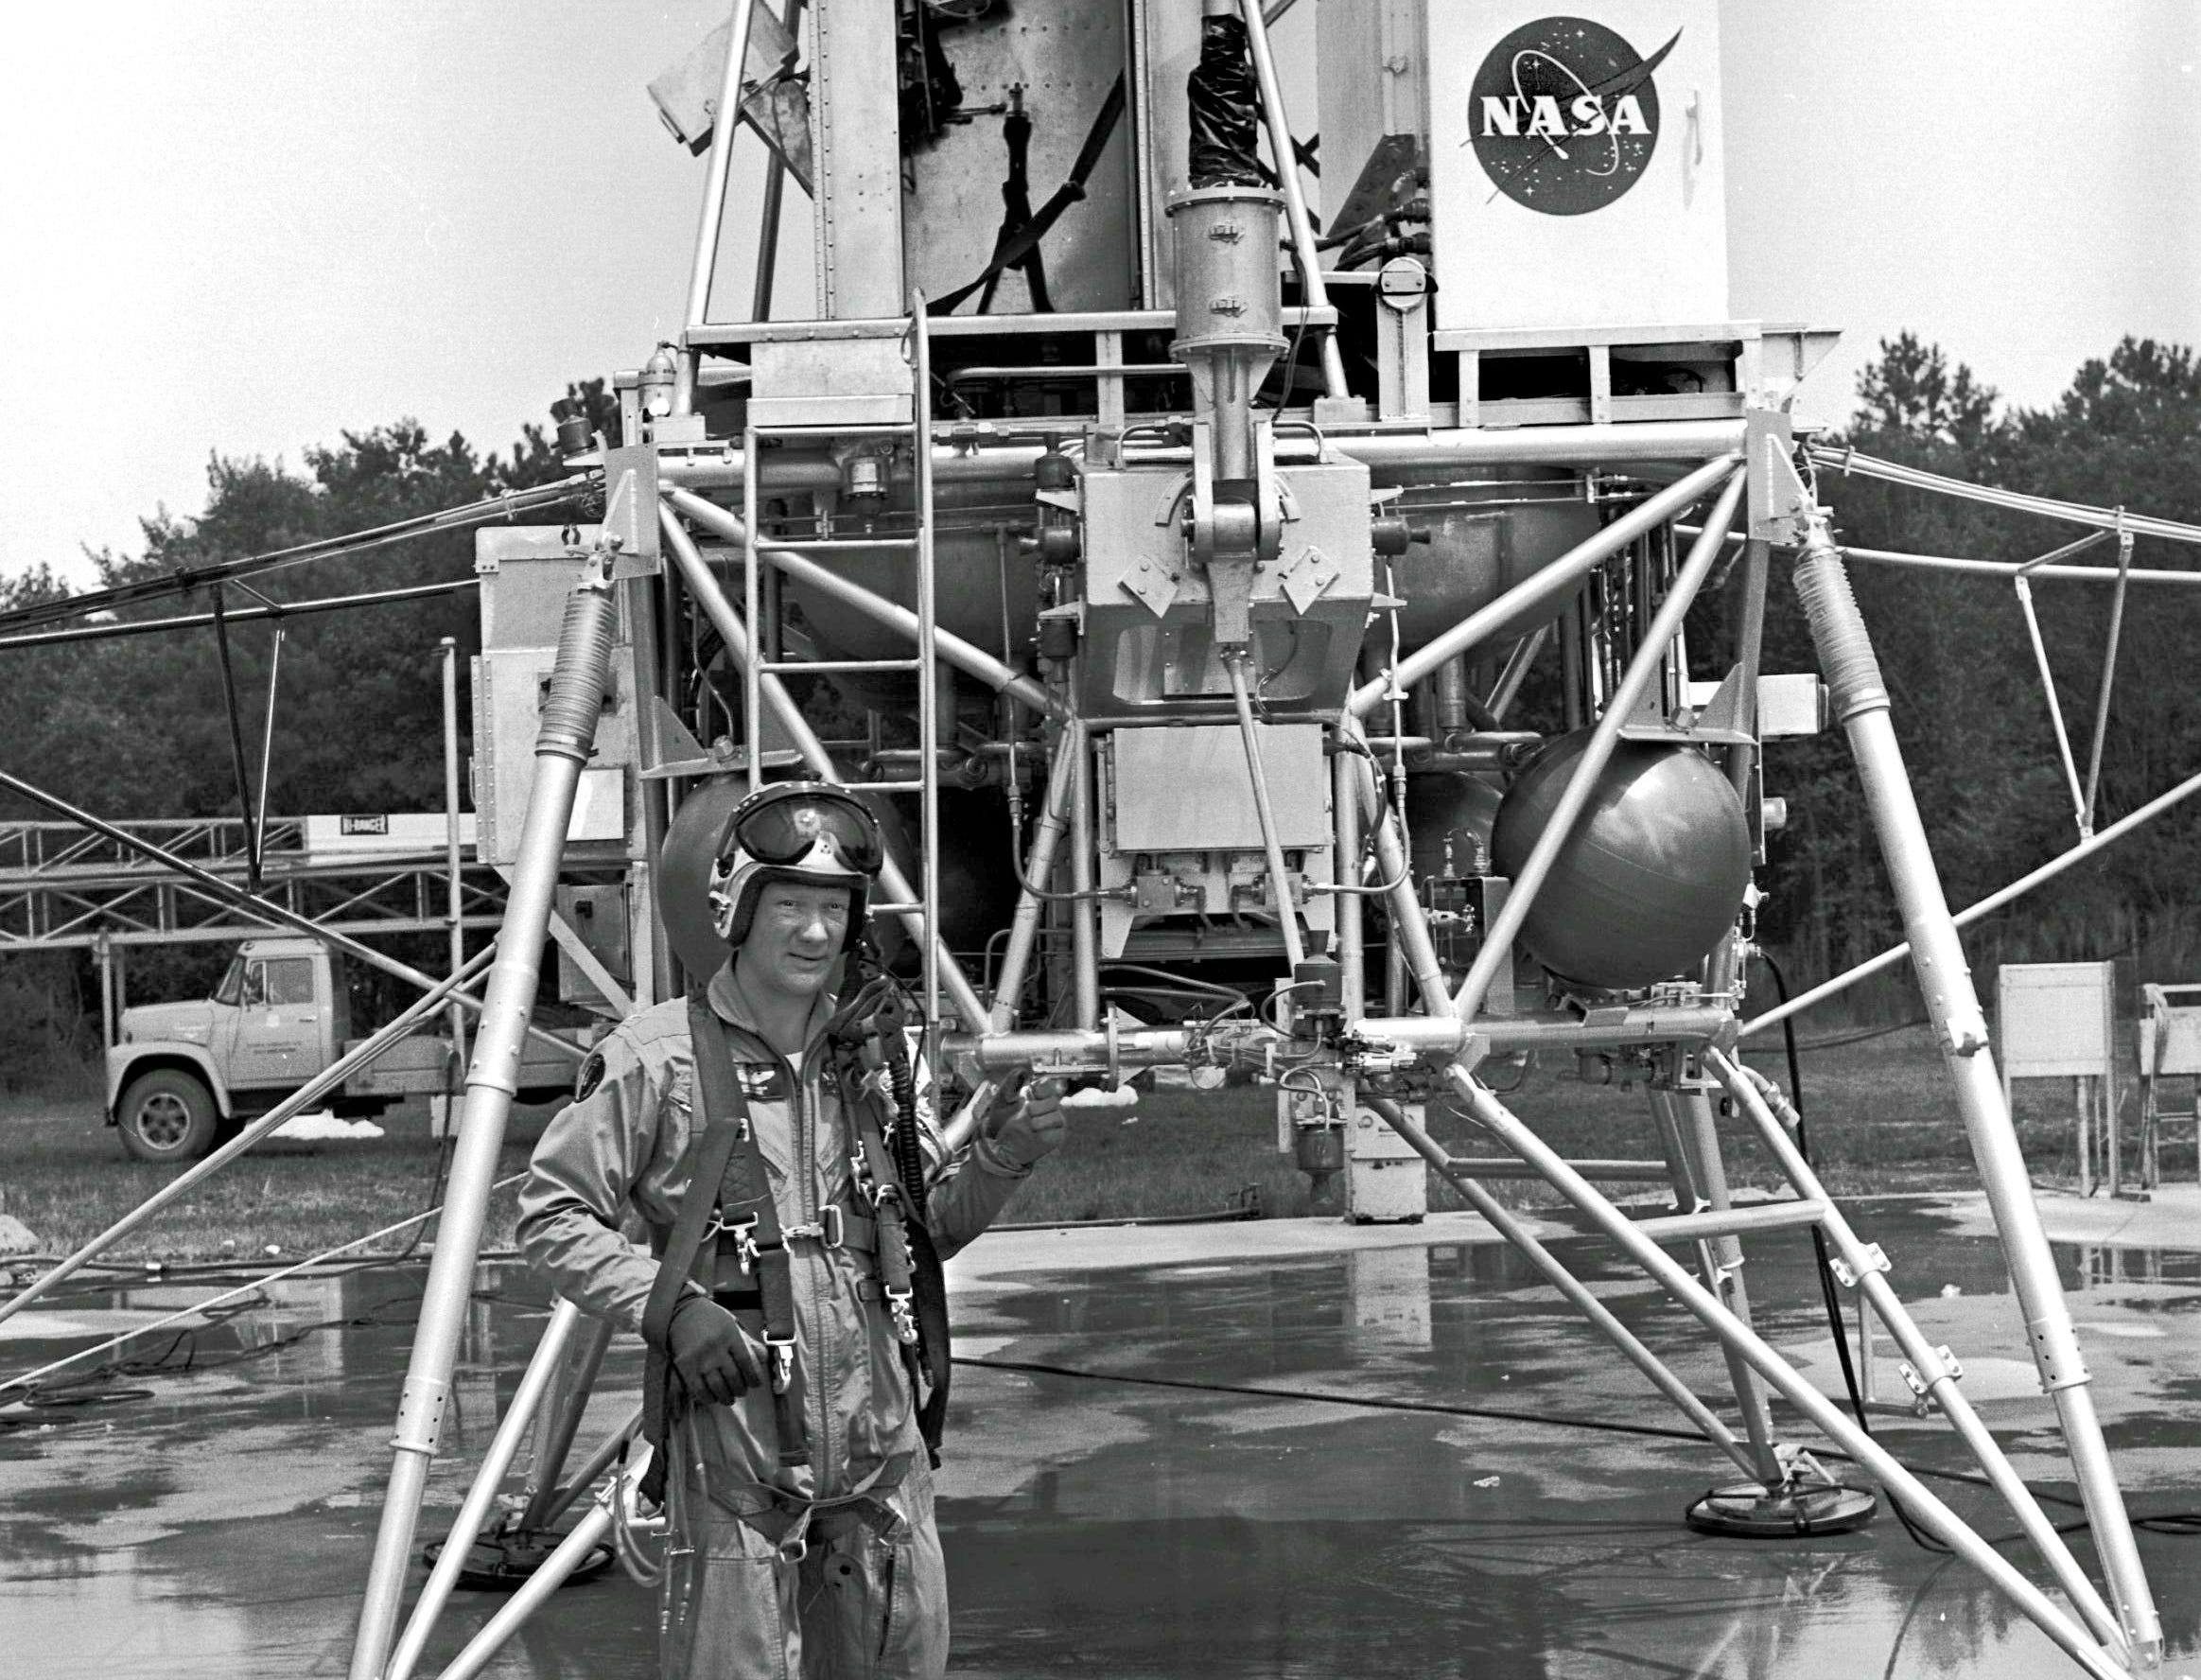 """Edwin """"Buzz"""" Aldrin, the second human to step on the surface of the moon is about to climb into the Lunar Module at the Langley Lunar Landing Research Facility. Aldrin was one of 23 astronauts who trained at the Langley facility in preparation for the final phase of the moon landing."""